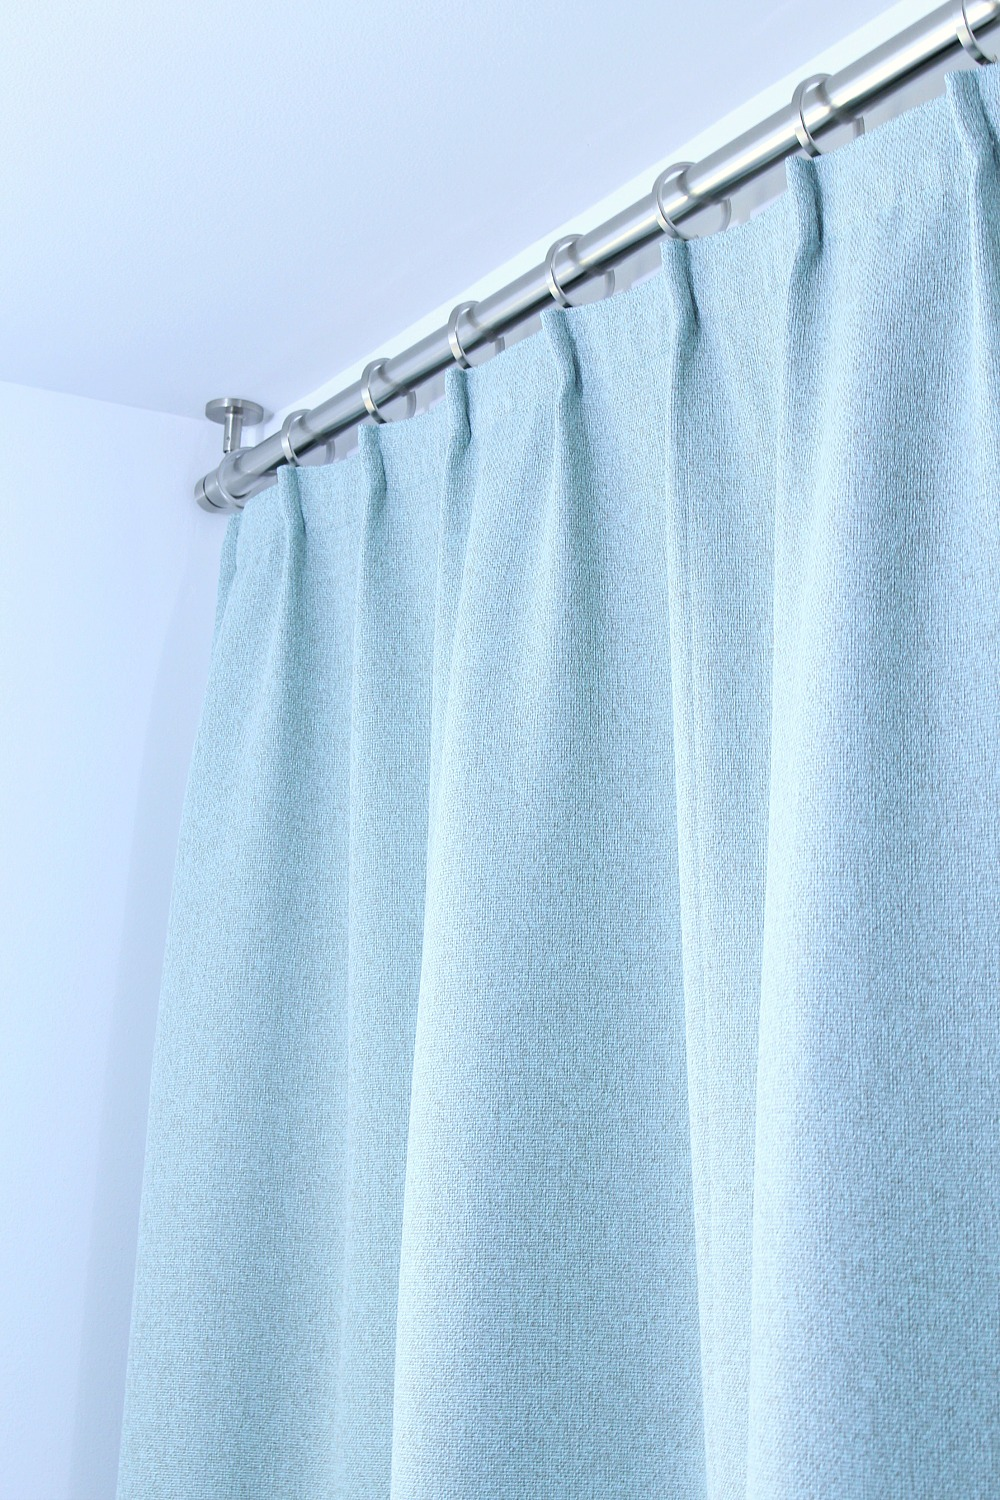 Ceiling Mounted Shower Curtain Rod + Turquoise Shower Curtain in Modern Bathroom Reno | www.danslelakehouse.com